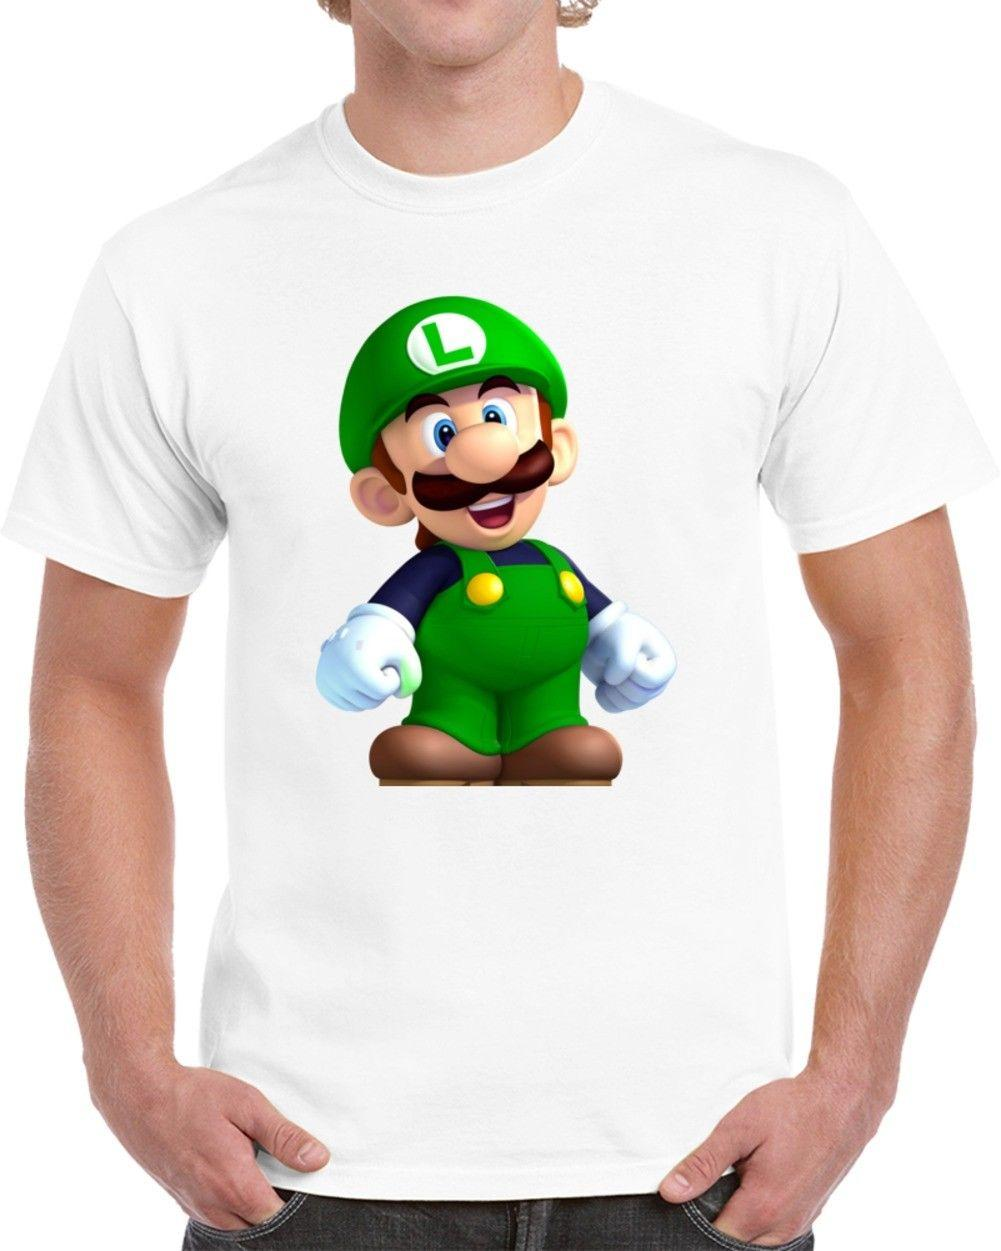 139a9c48f Luigi Tshirt All Styles And Colors Available New Fashion 100% Cotton For  Man Tee Cheap Wholesale 100% Cotton Classic Tee Humor T Shirt Funny Ts From  ...